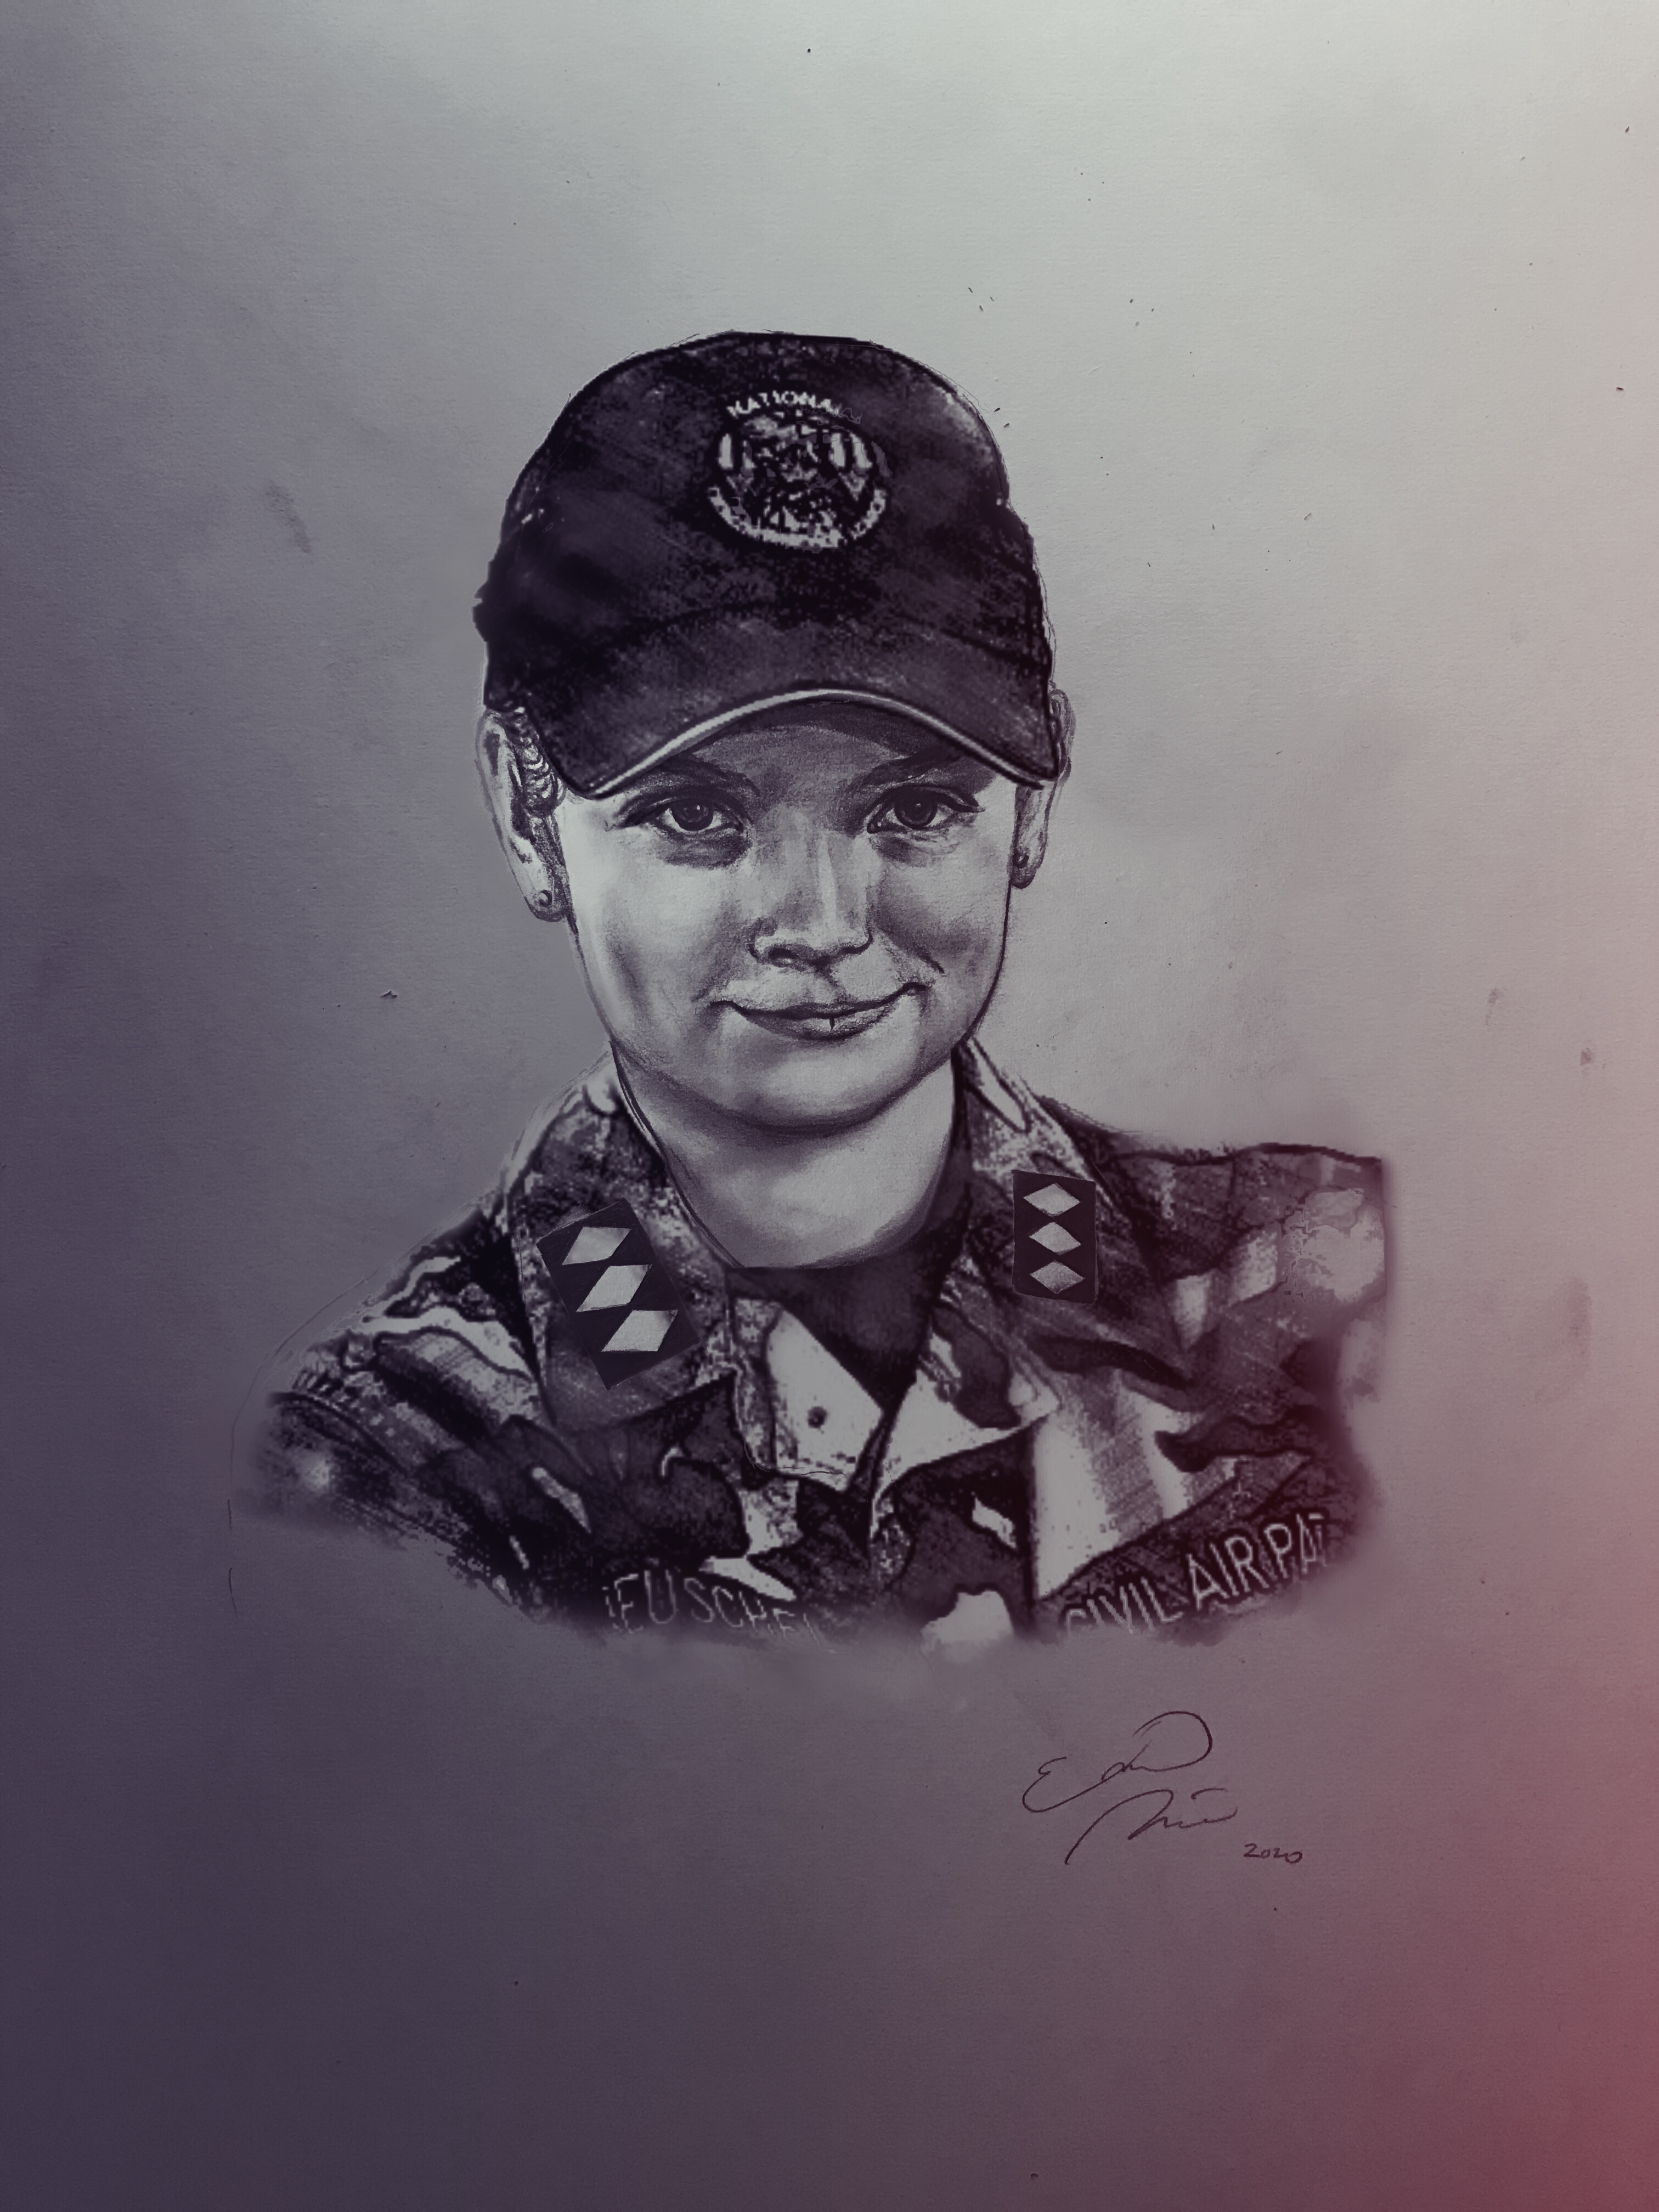 A charcoal portrait of Cadet Colonel Whitney Reuschel, drawn by Emma Merritt.